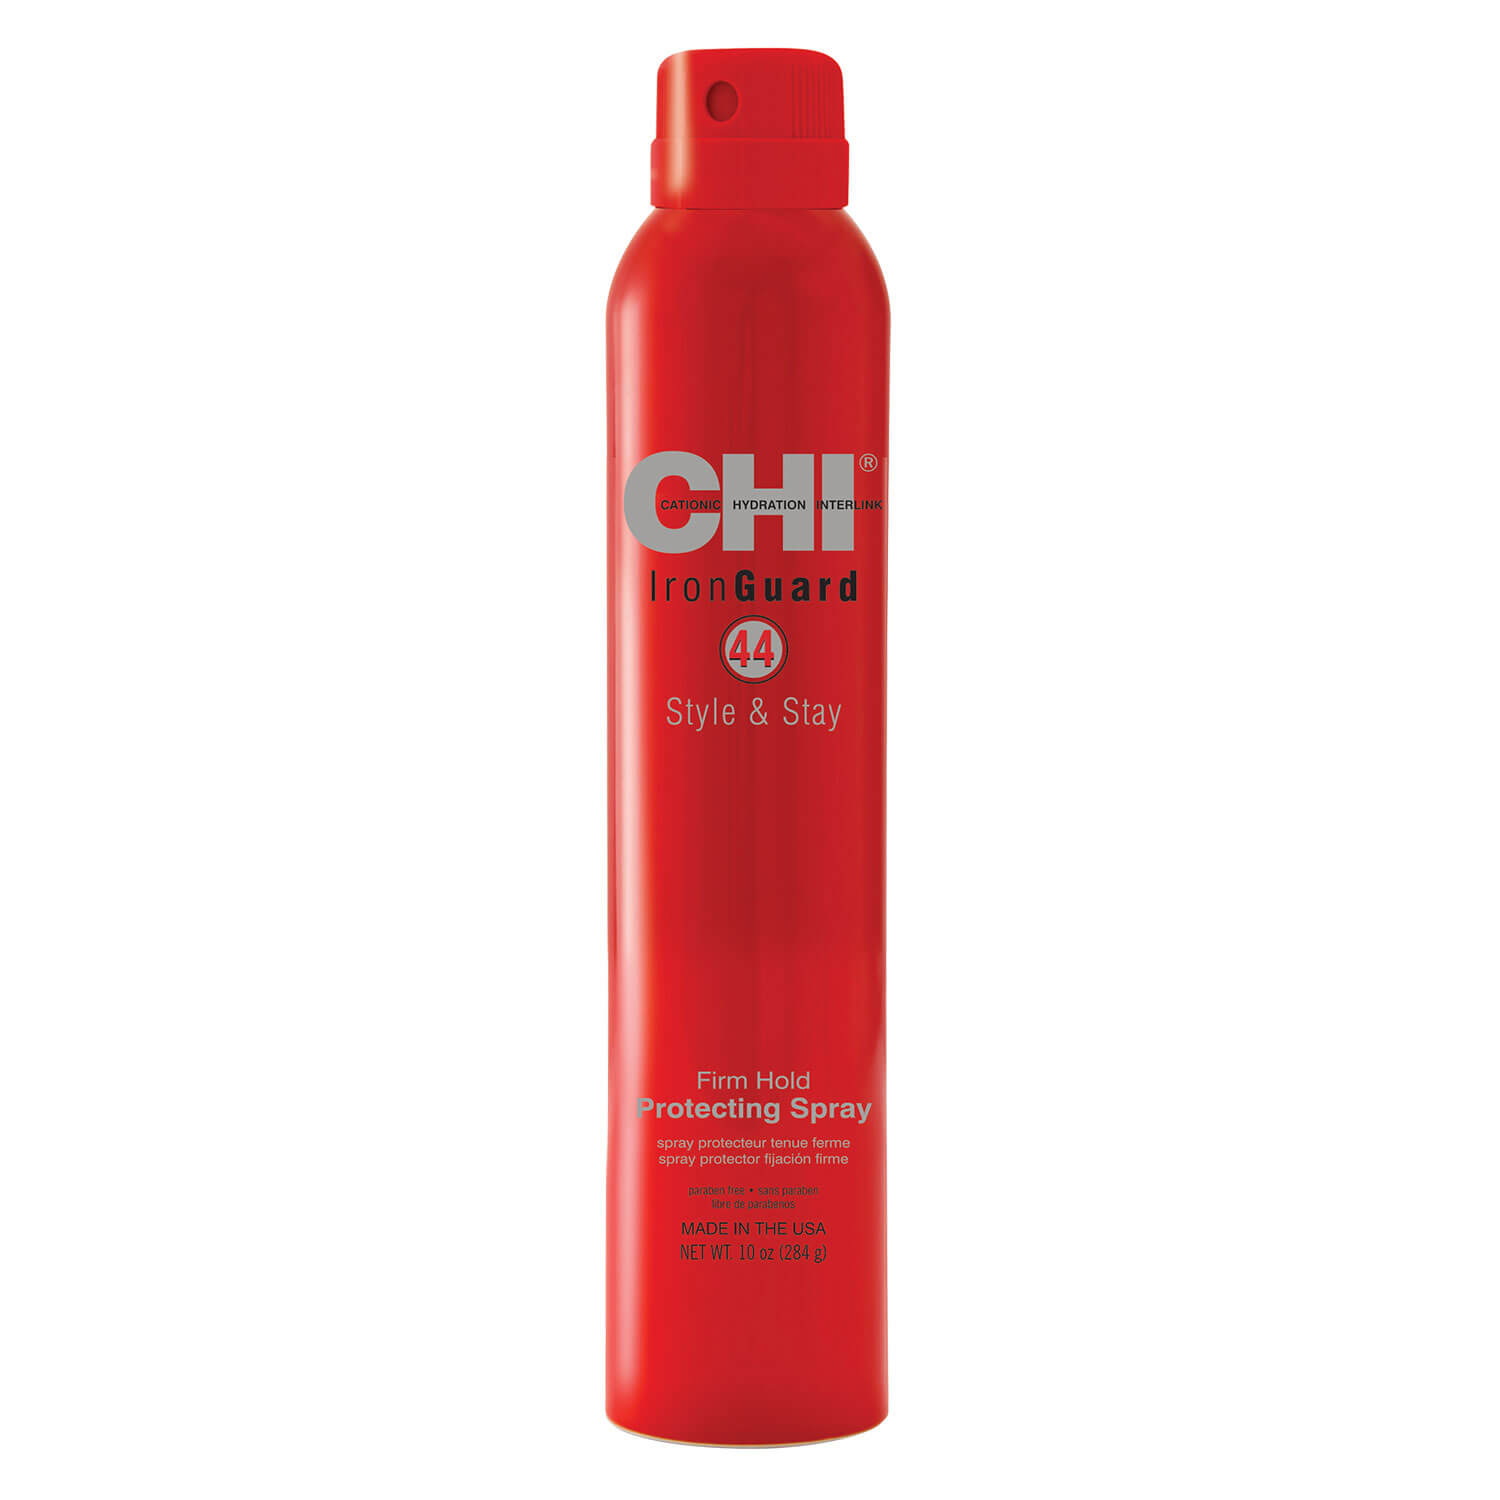 CHI 44 Iron Guard - Style & Stay Firm Hold Protecting Spray